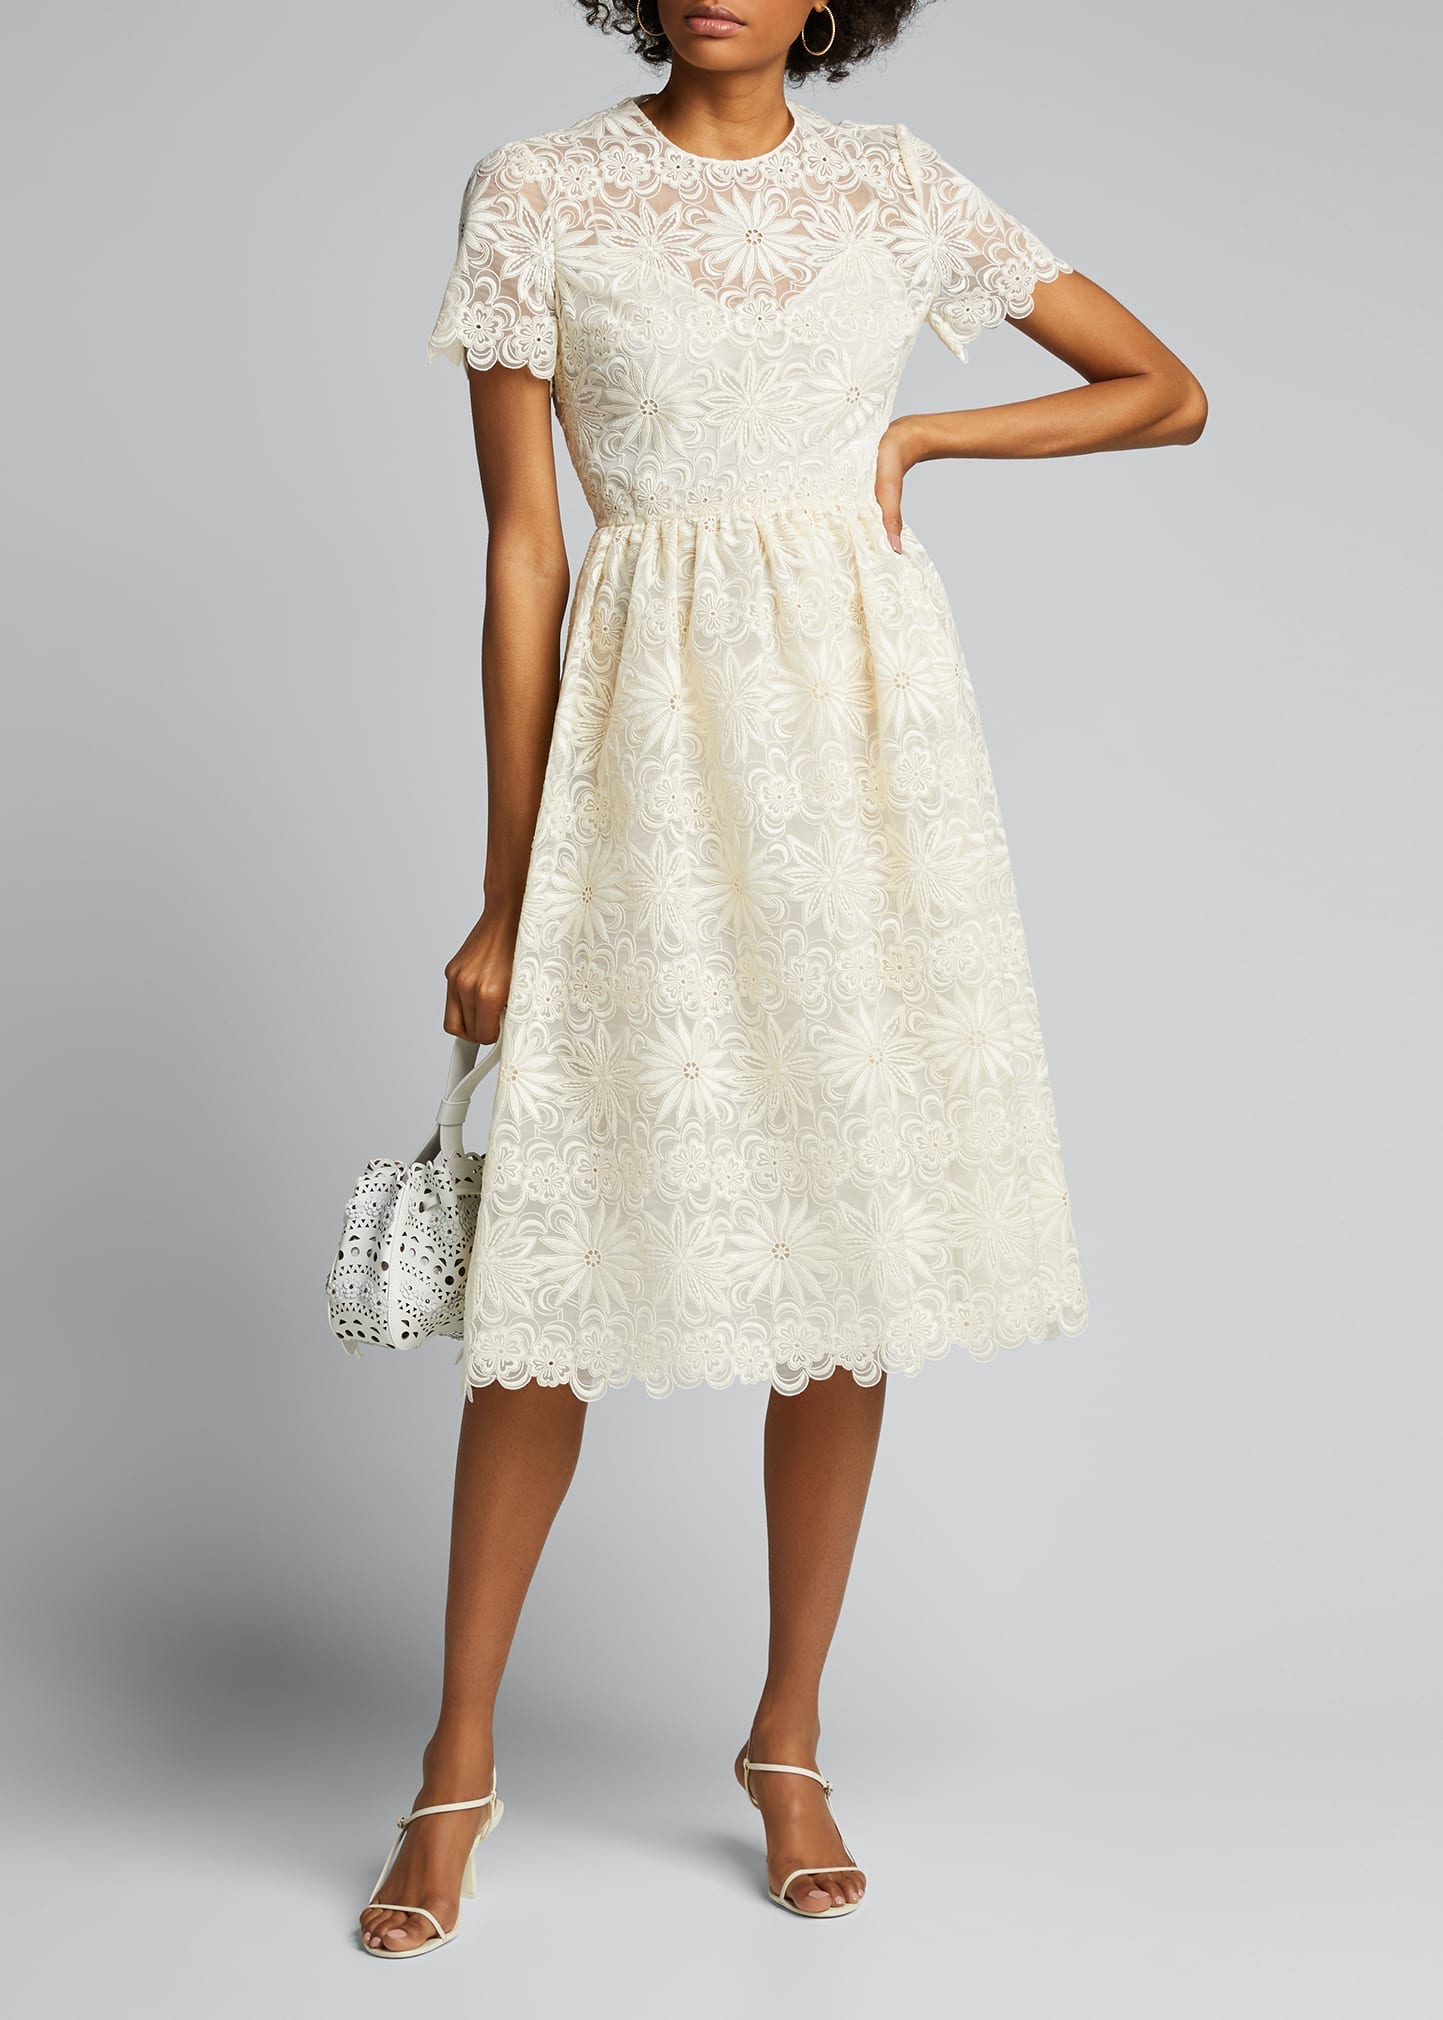 VALENTINO Short-Sleeve Lace Midi Dress